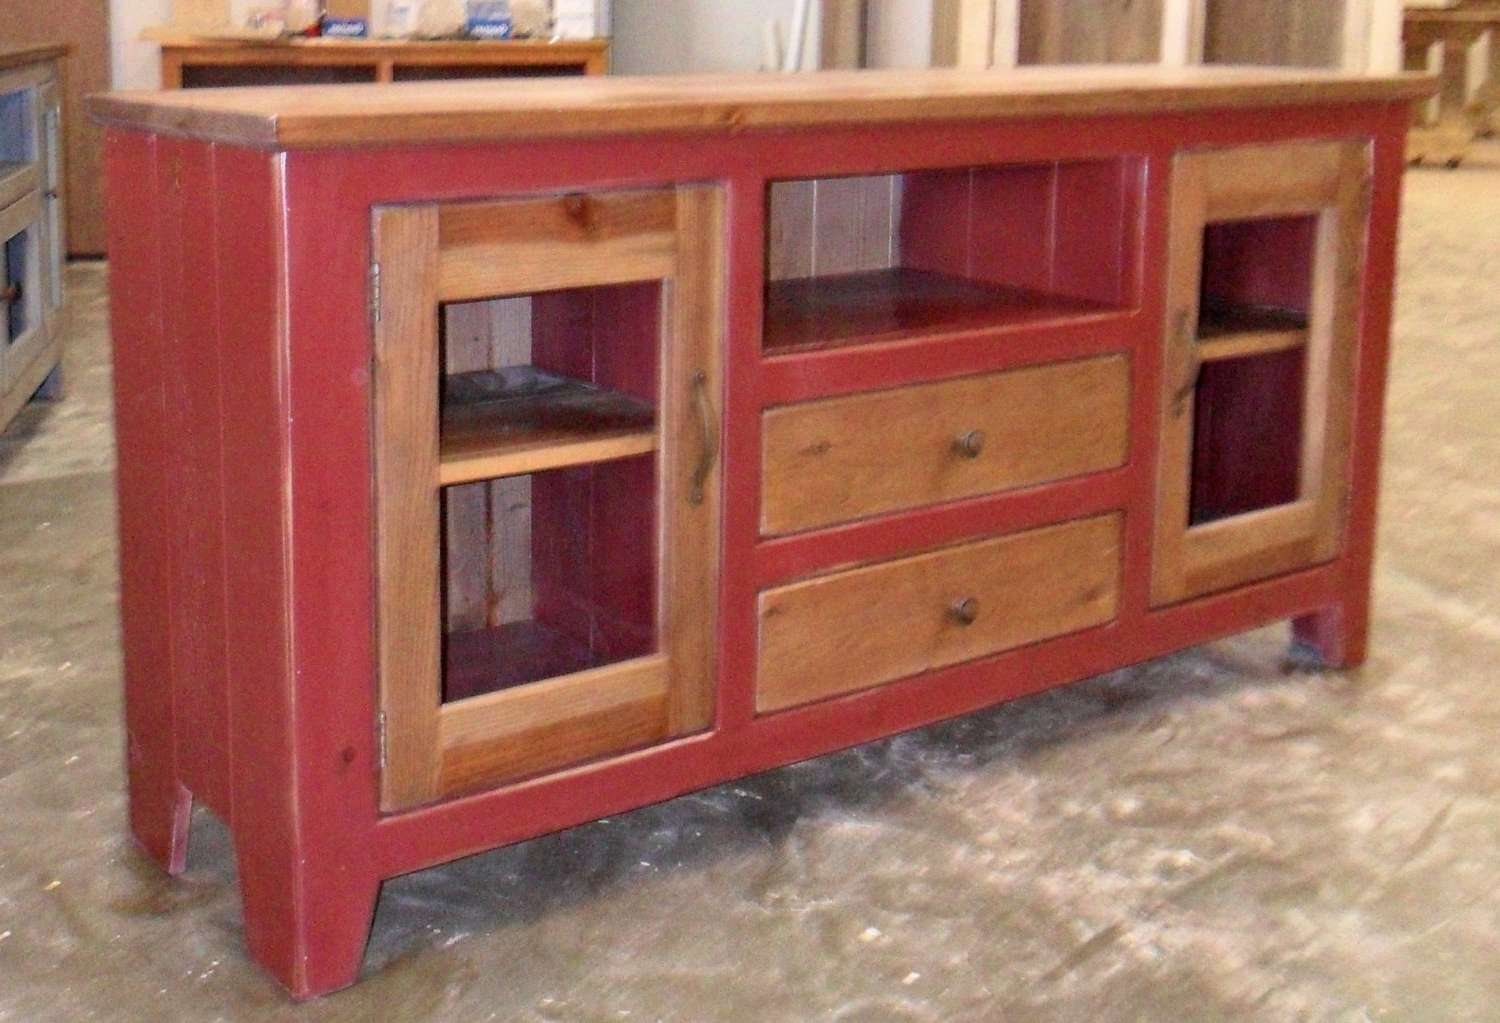 Media Cabinet Reclaimed Wood Tv Stand Rustic Vintage Pertaining To Rustic Wood Tv Cabinets (View 4 of 20)